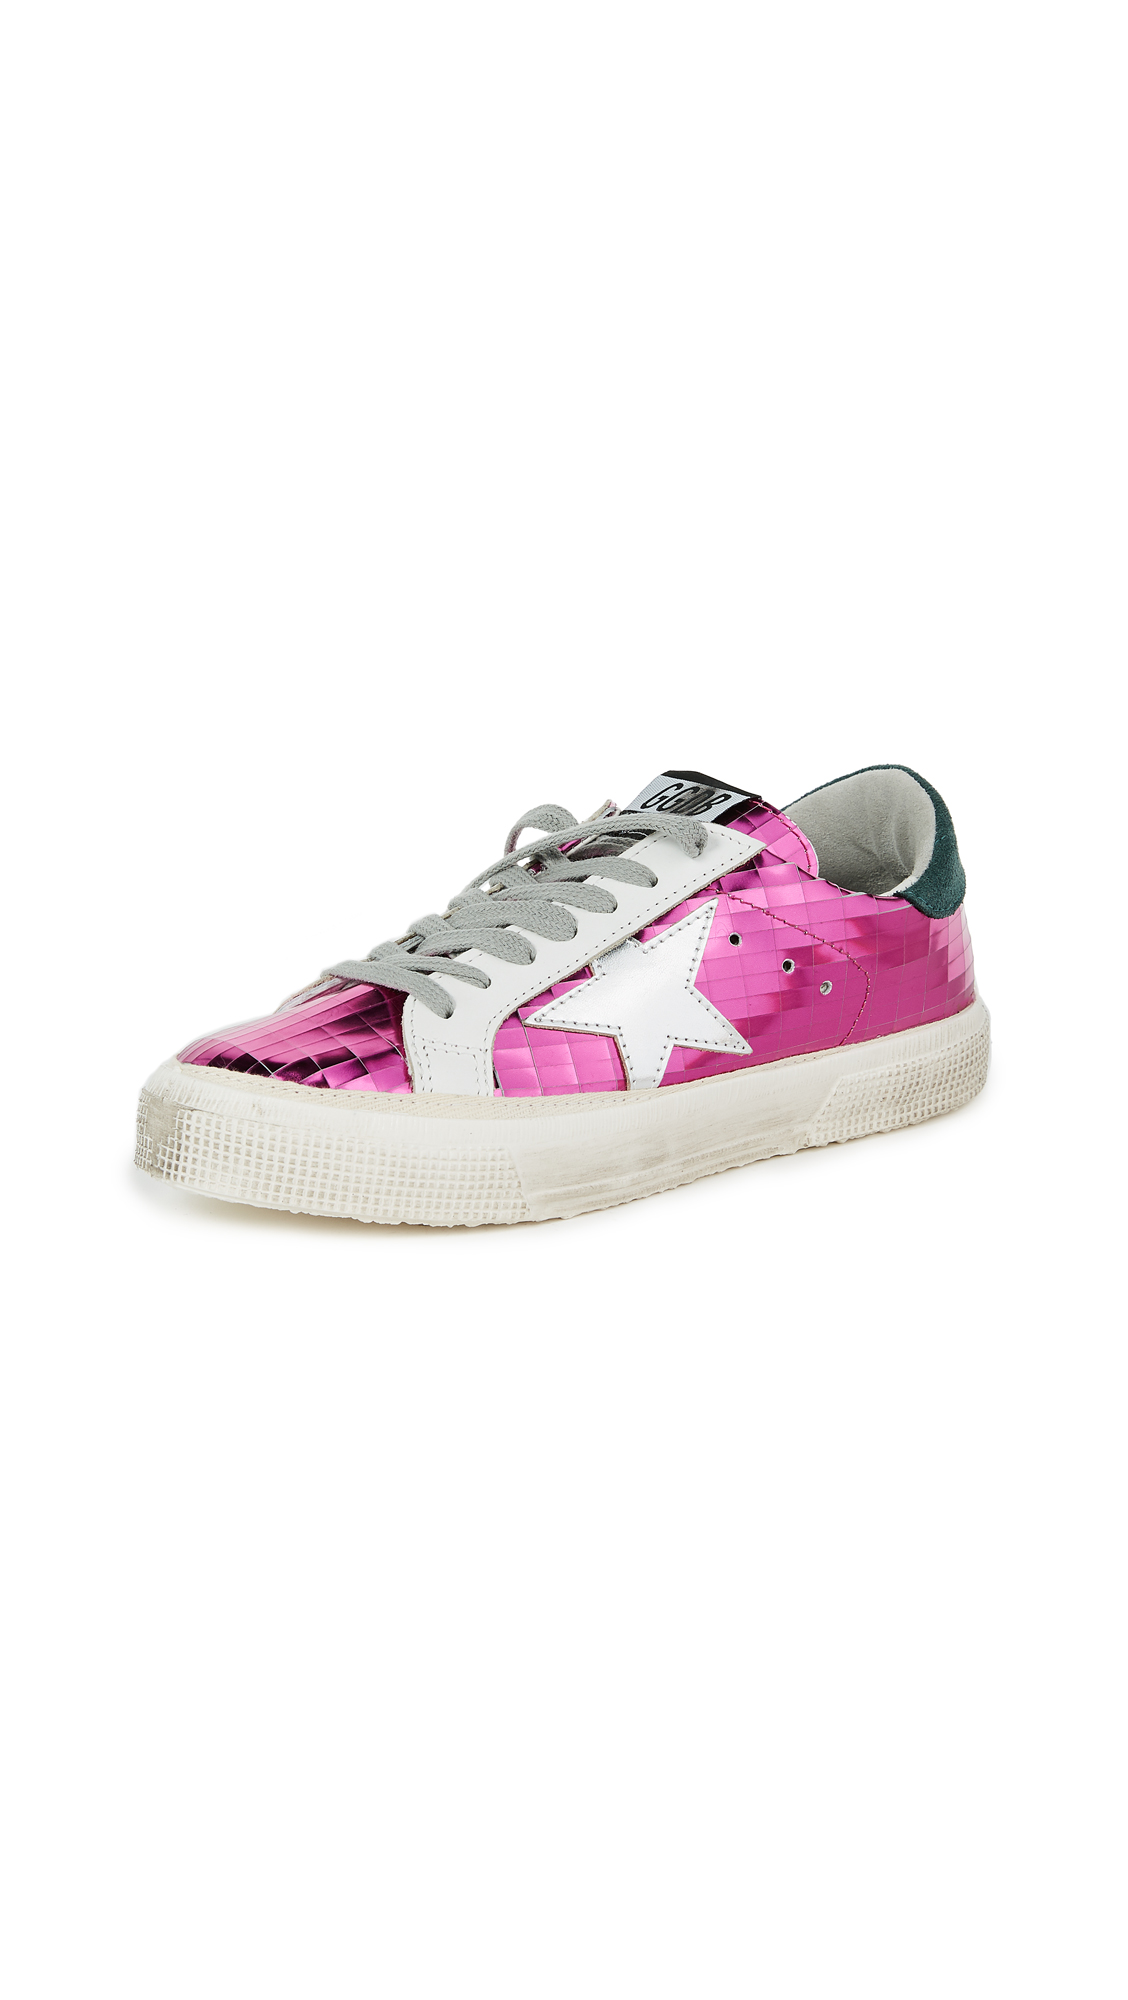 Golden Goose May Sneakers - Fuchsia